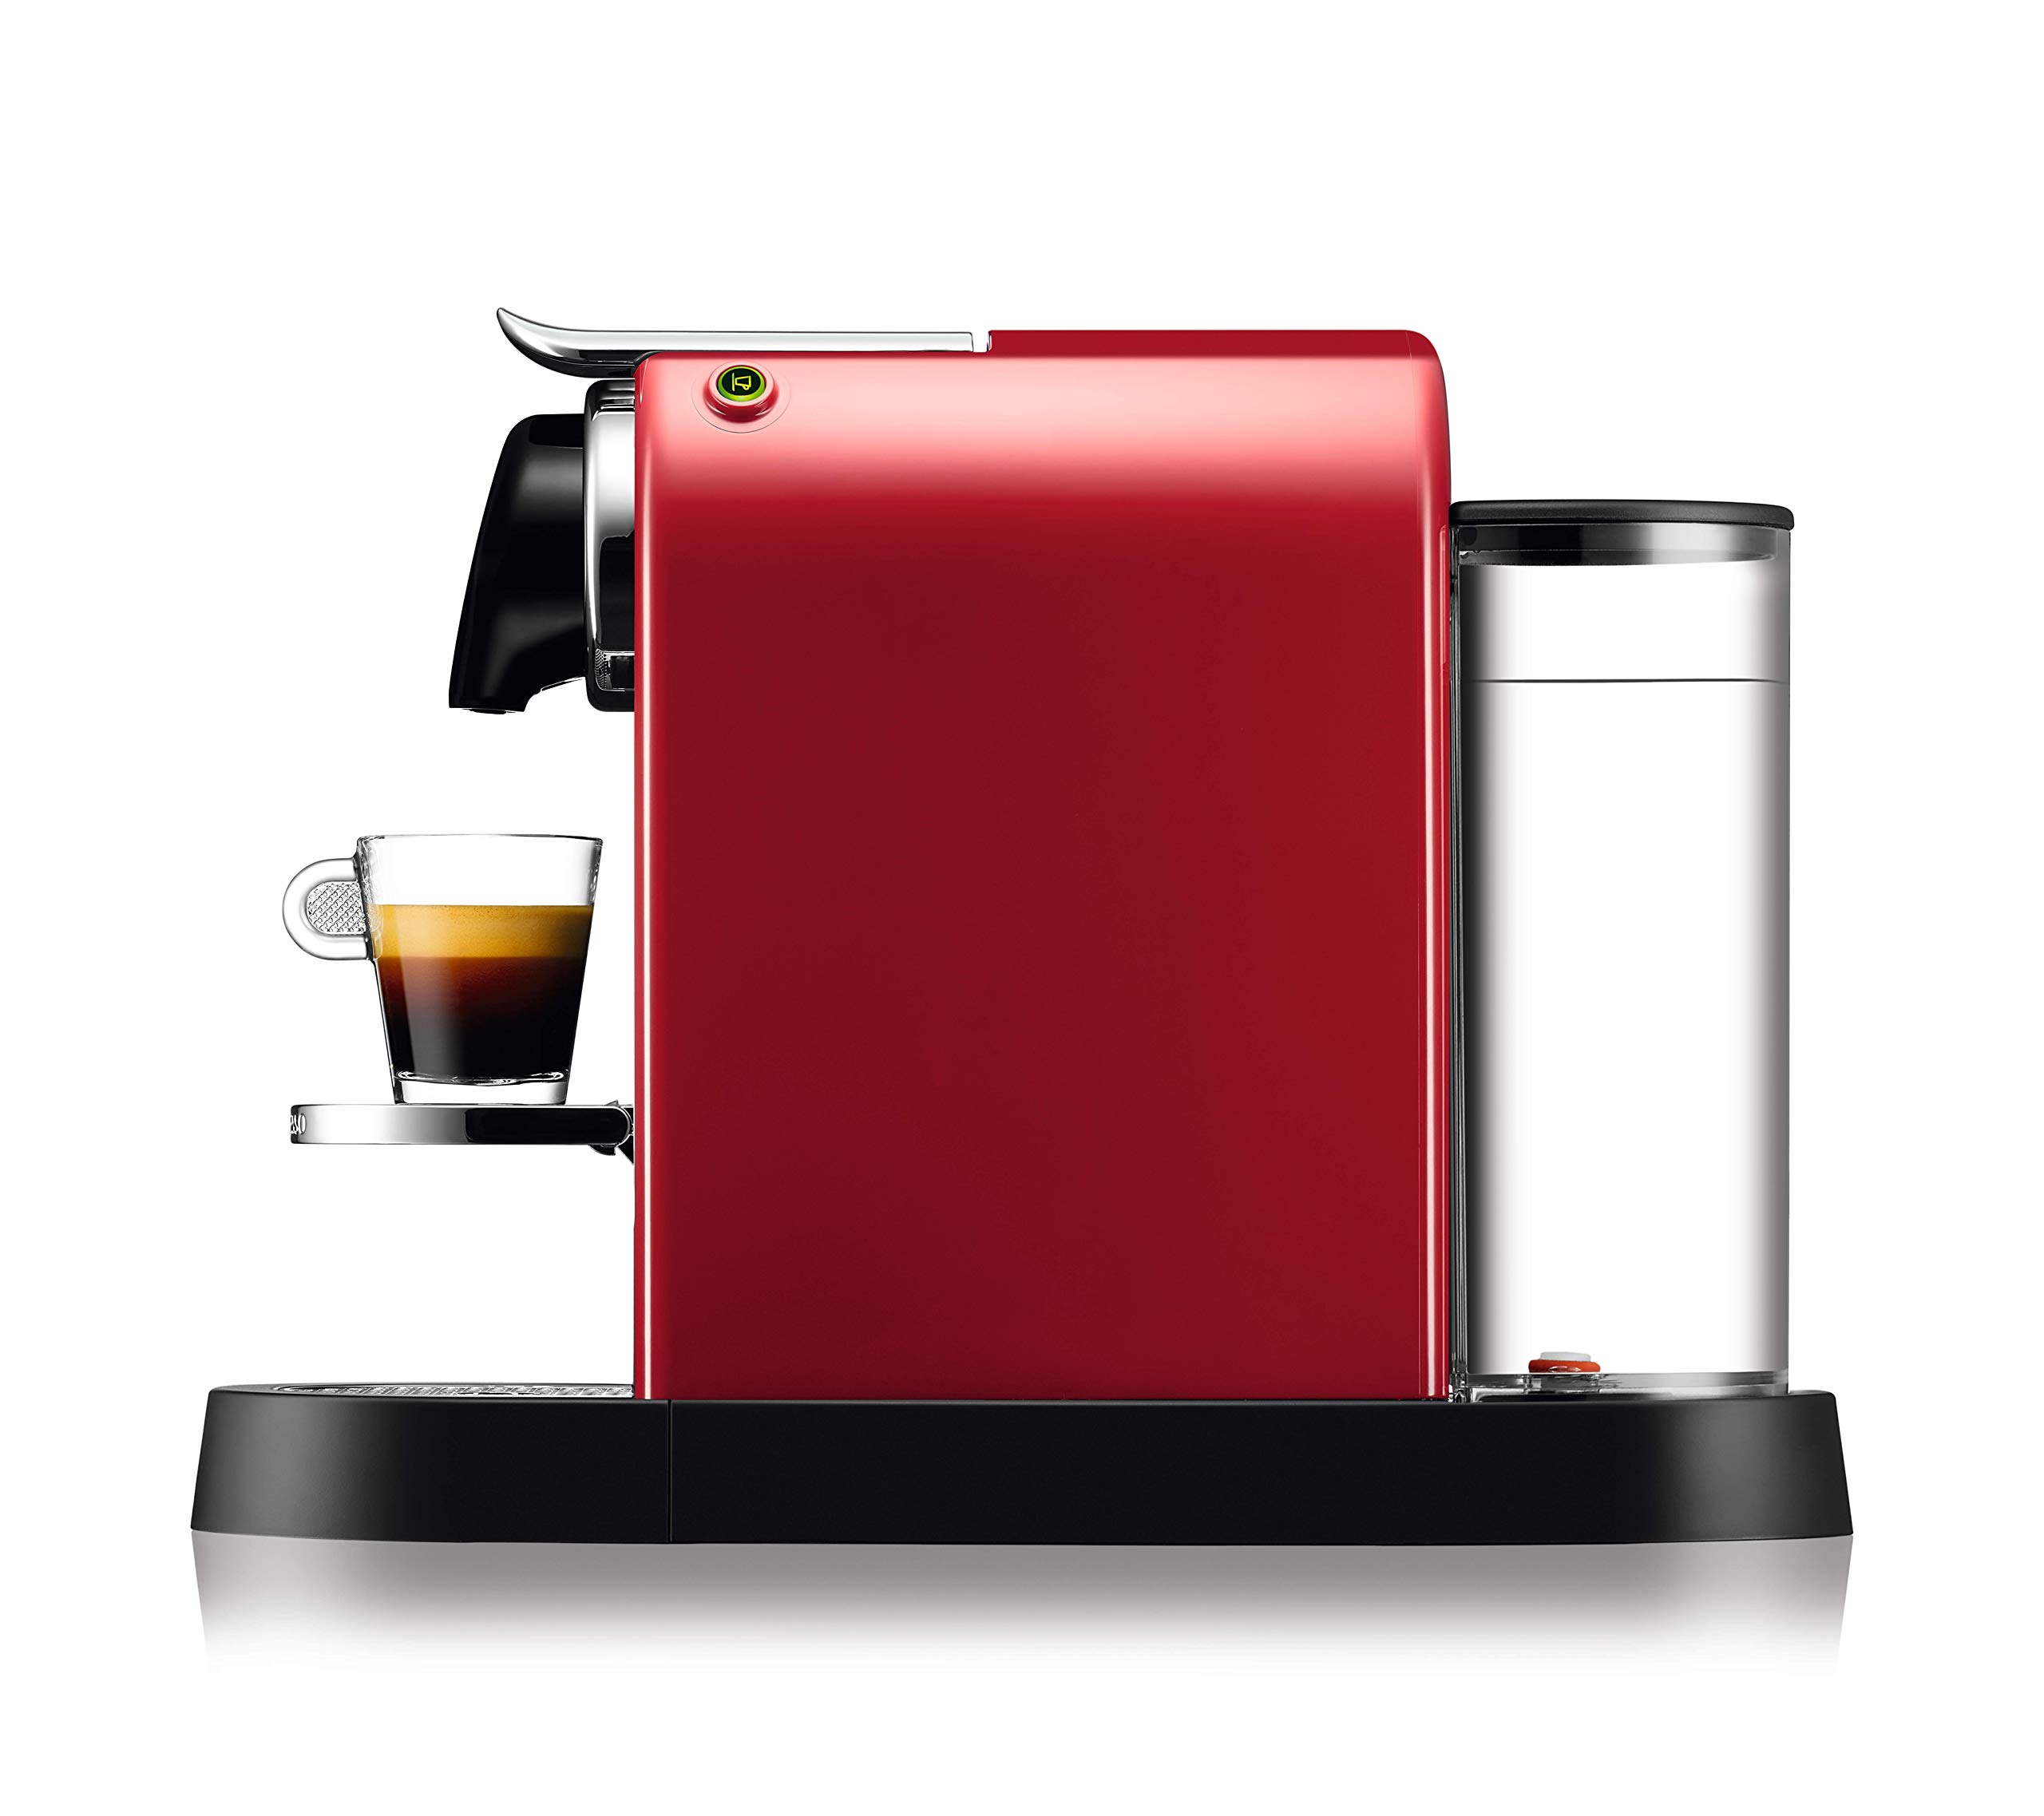 71ZS3s84wvL - NESPRESSO KRUPS Citiz XN741540 Pod Coffee Machine-Red